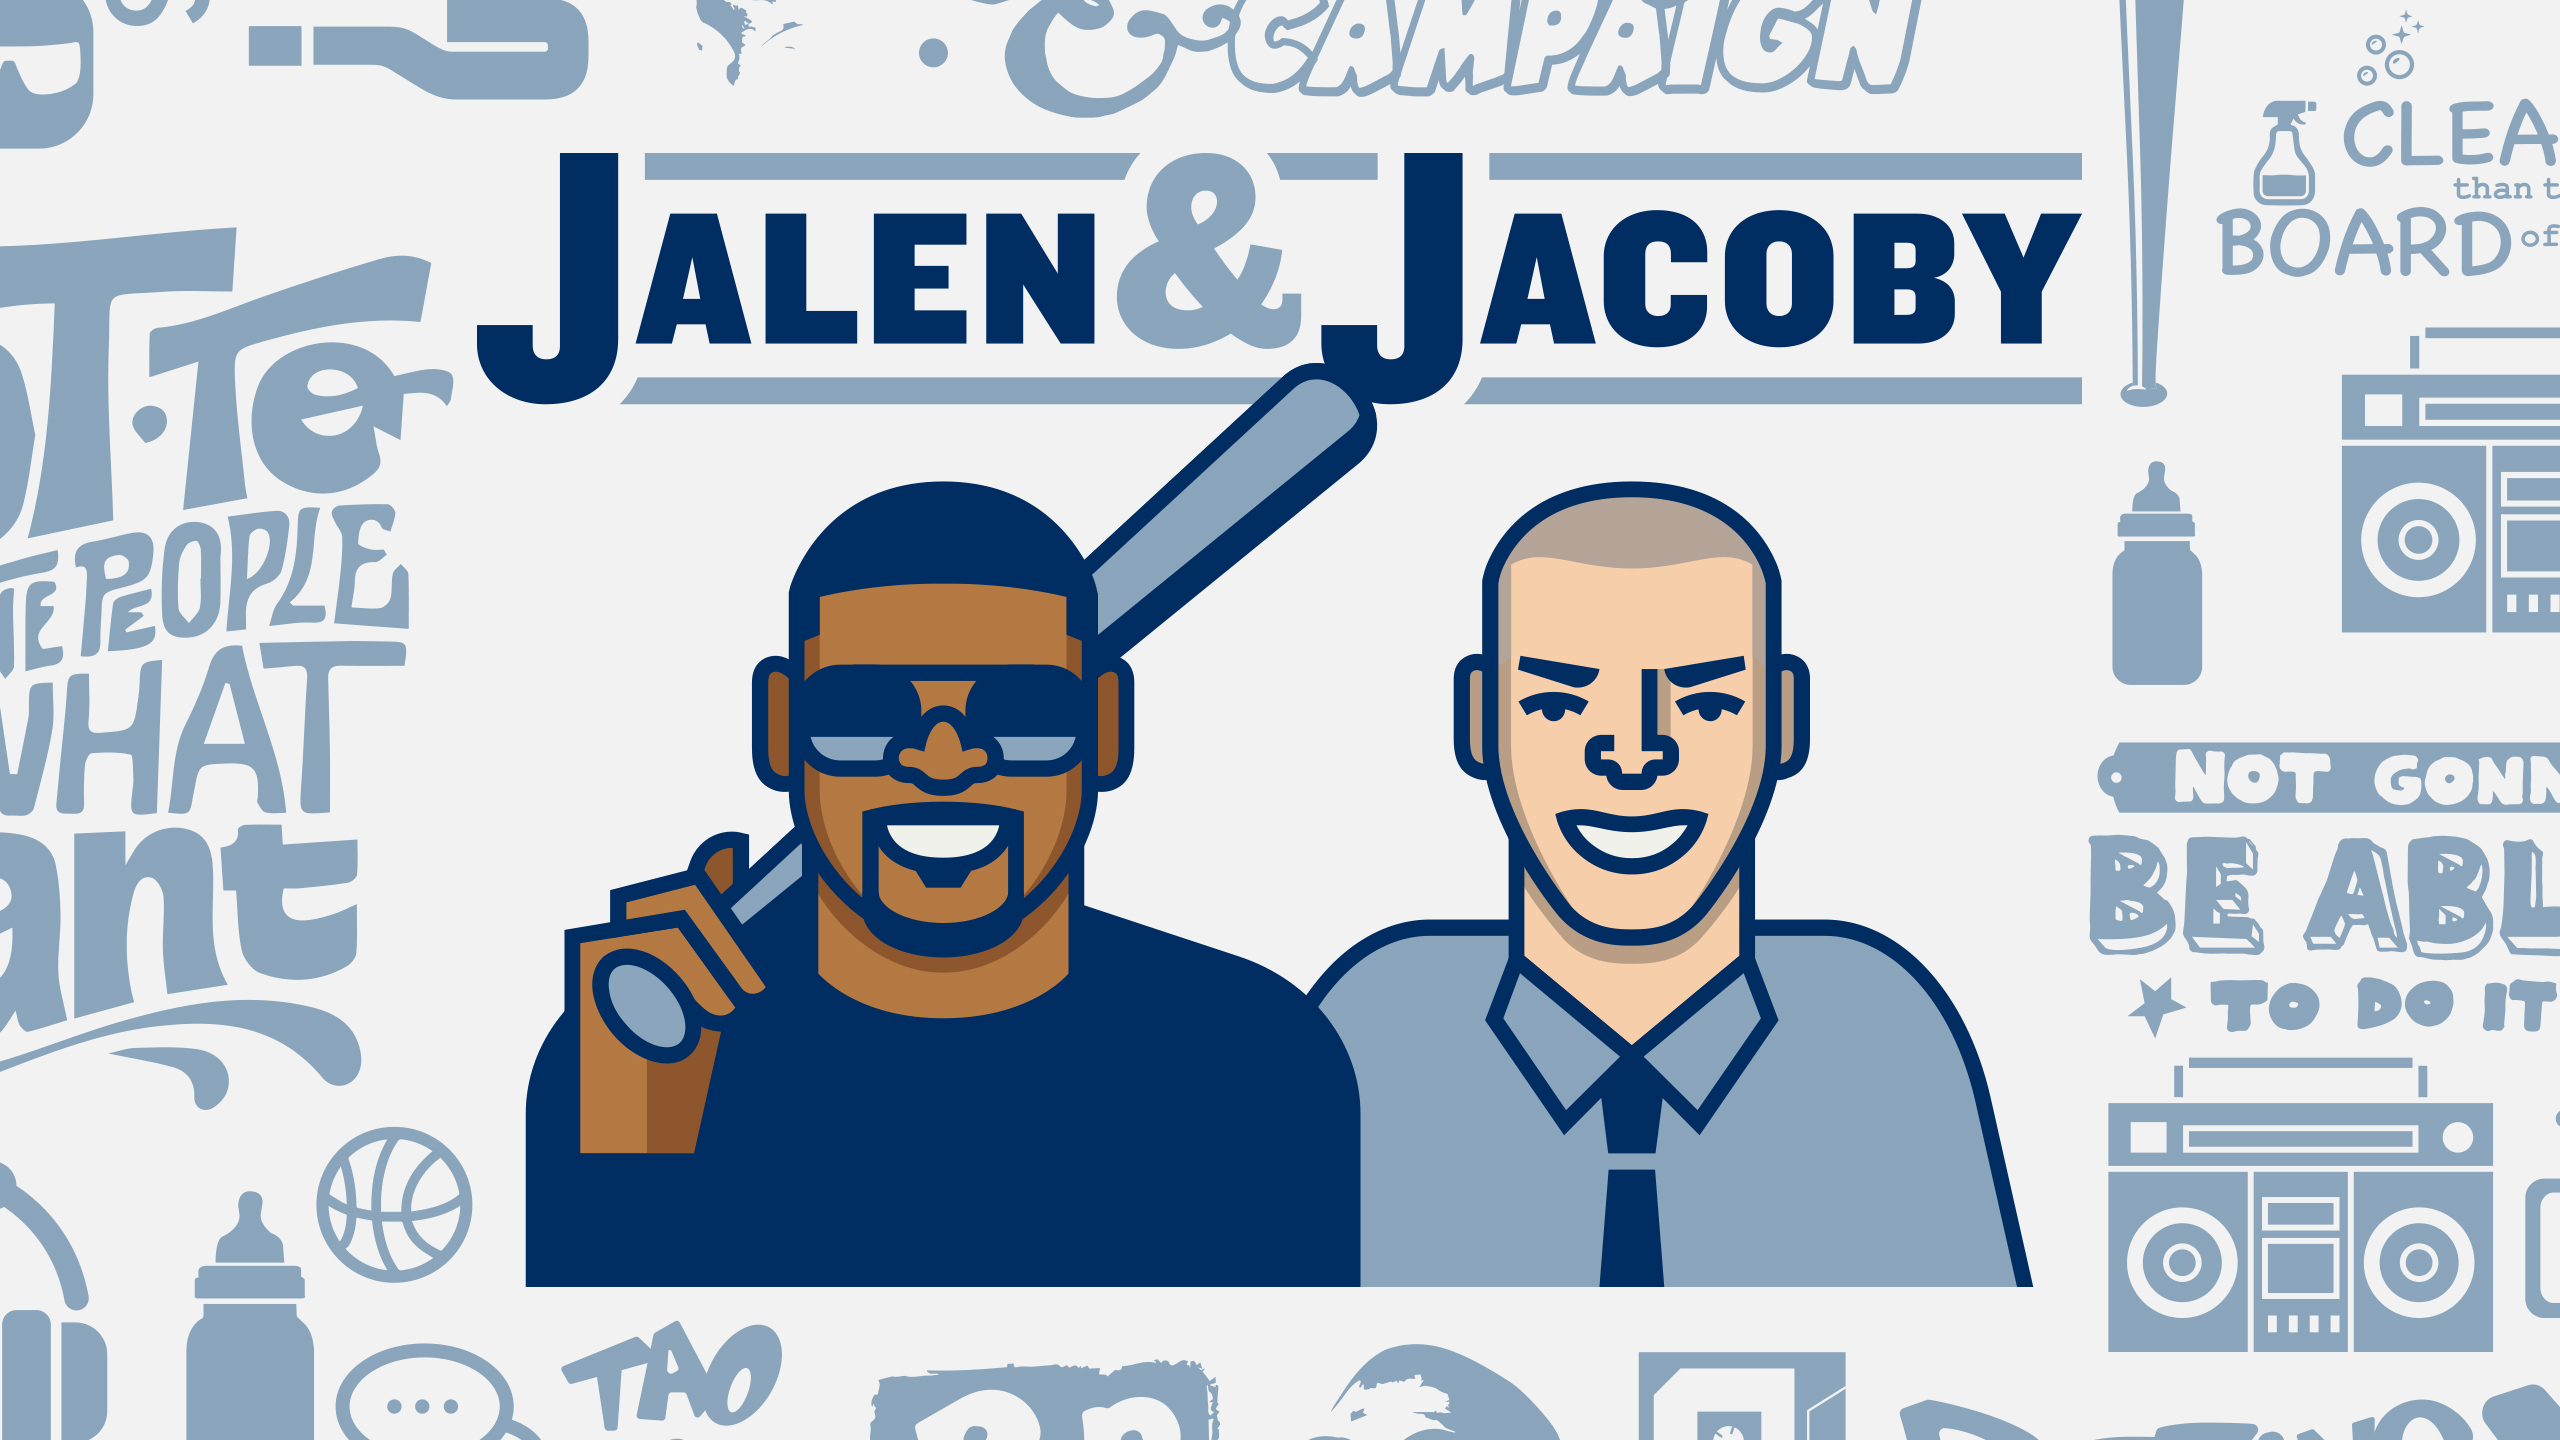 Fri, 2/15 - Jalen & Jacoby